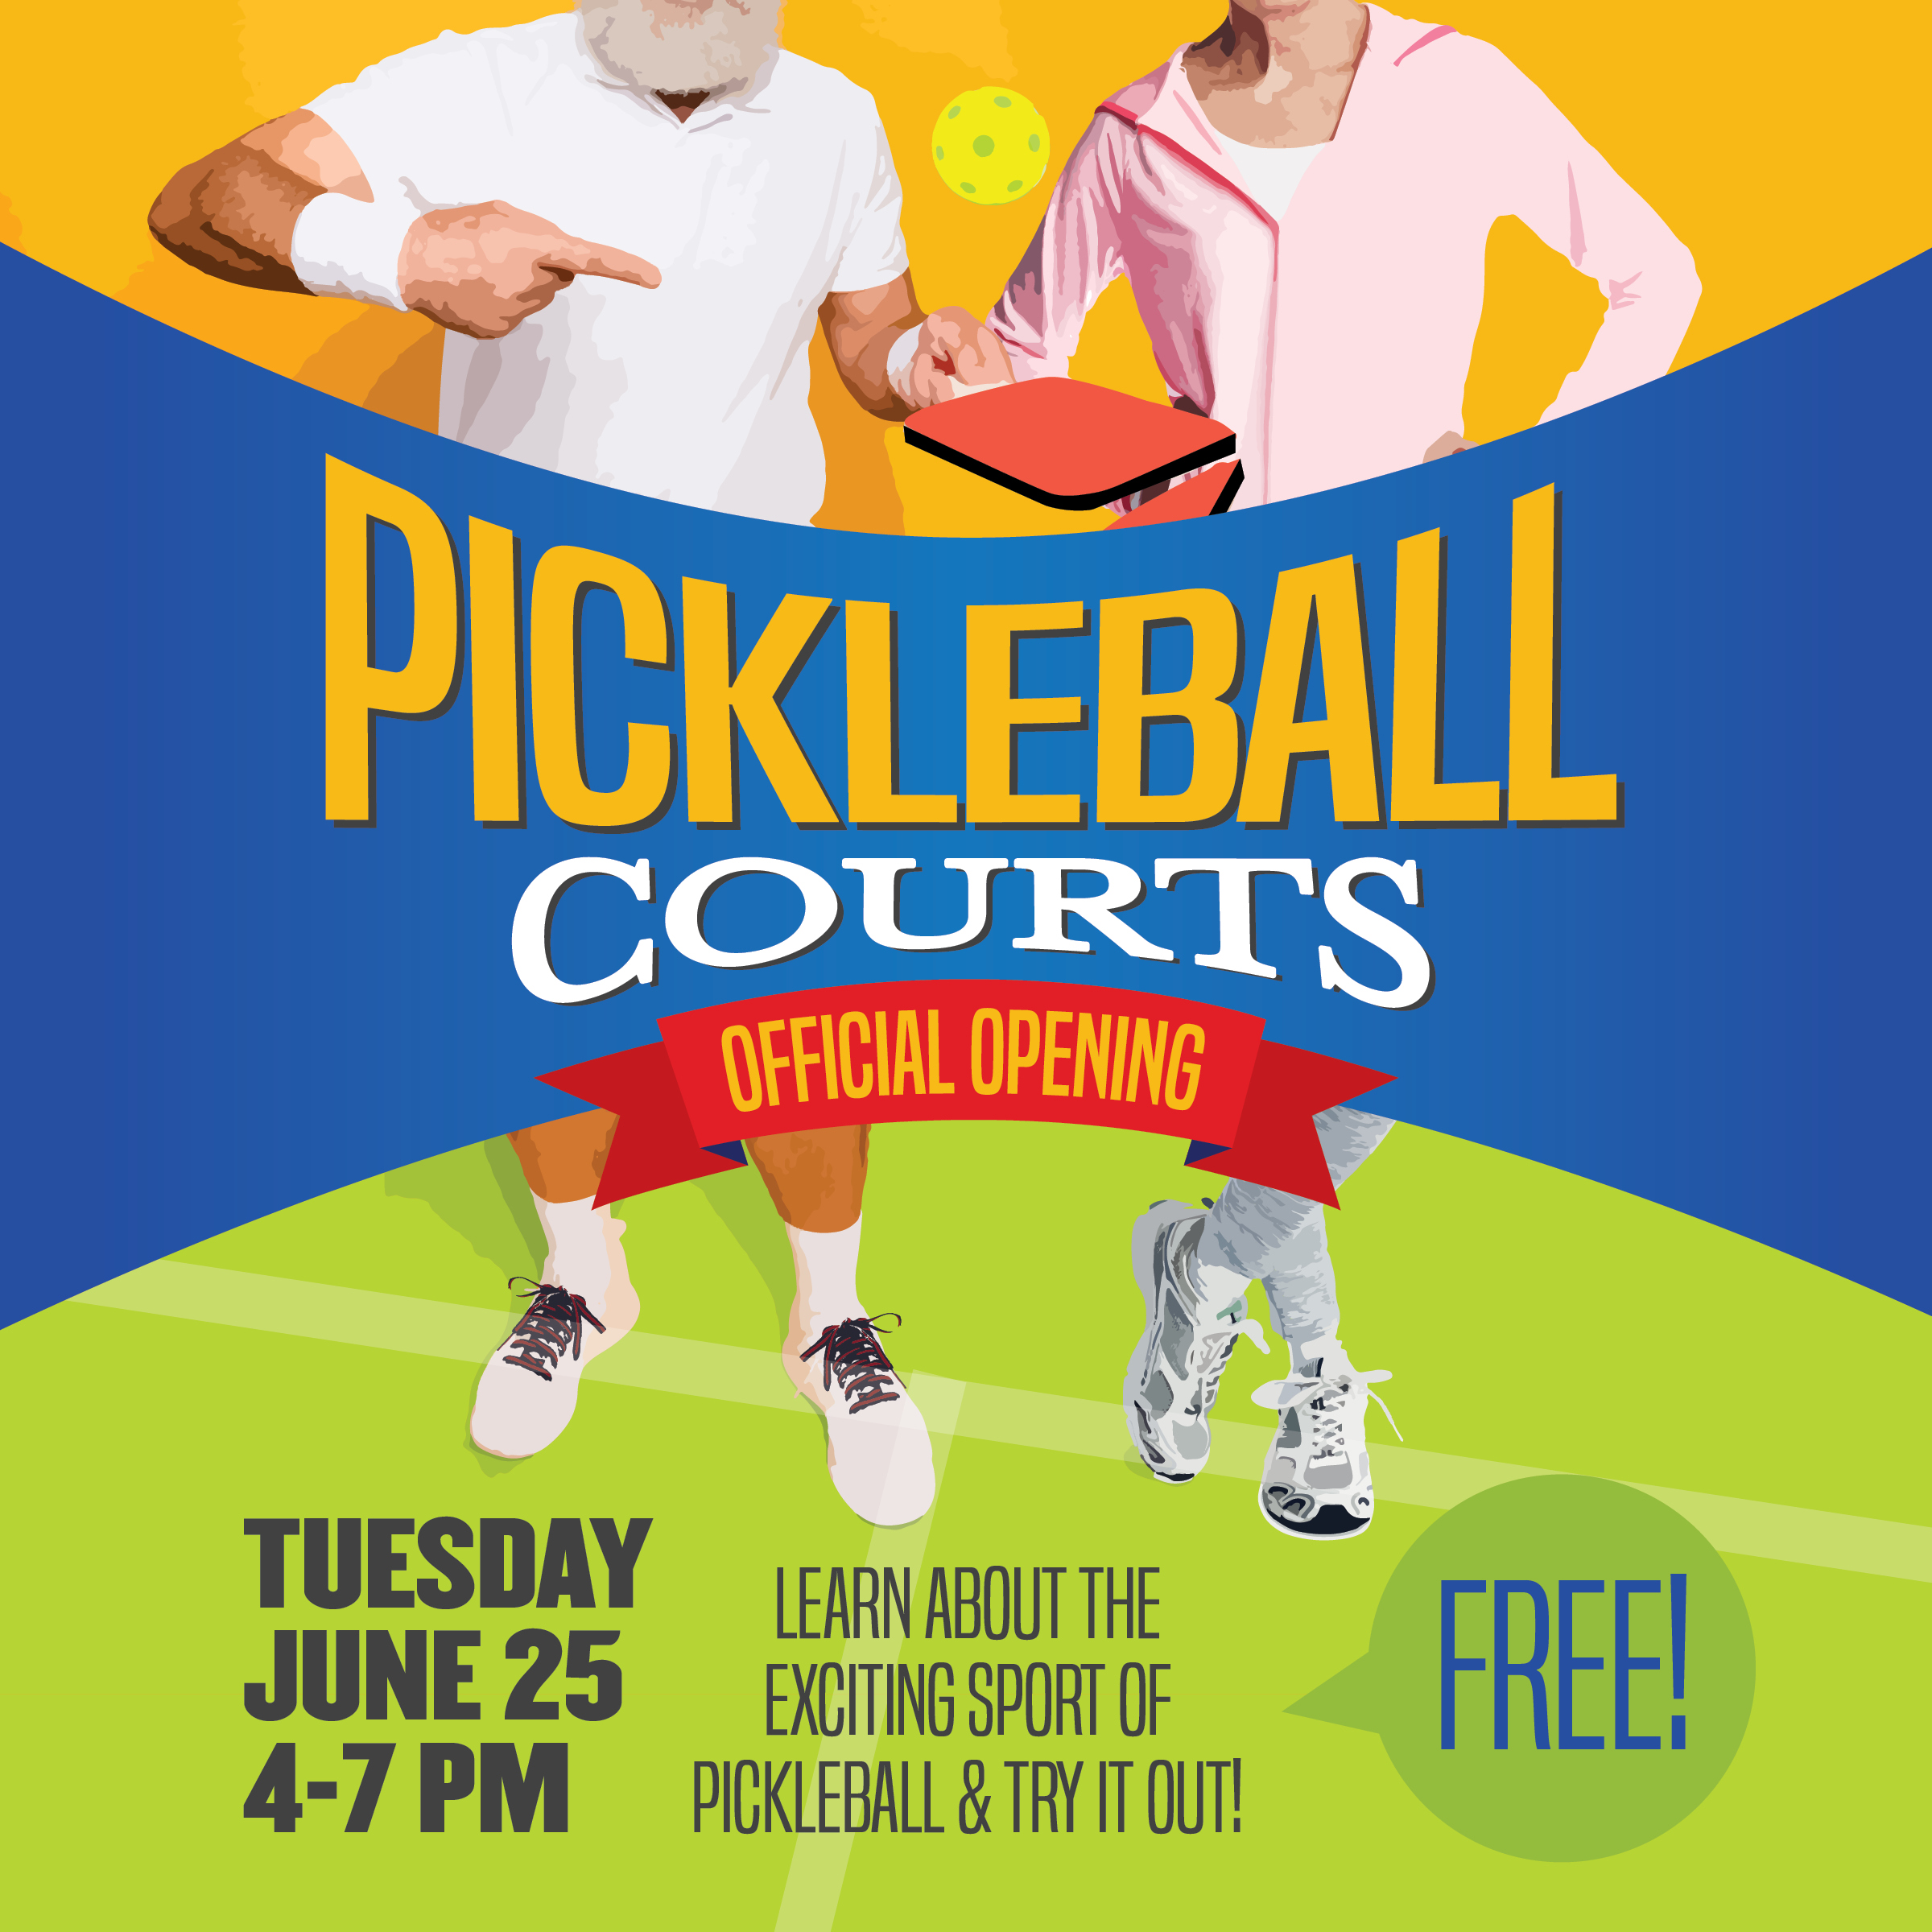 Pickleball Courts Official Opening